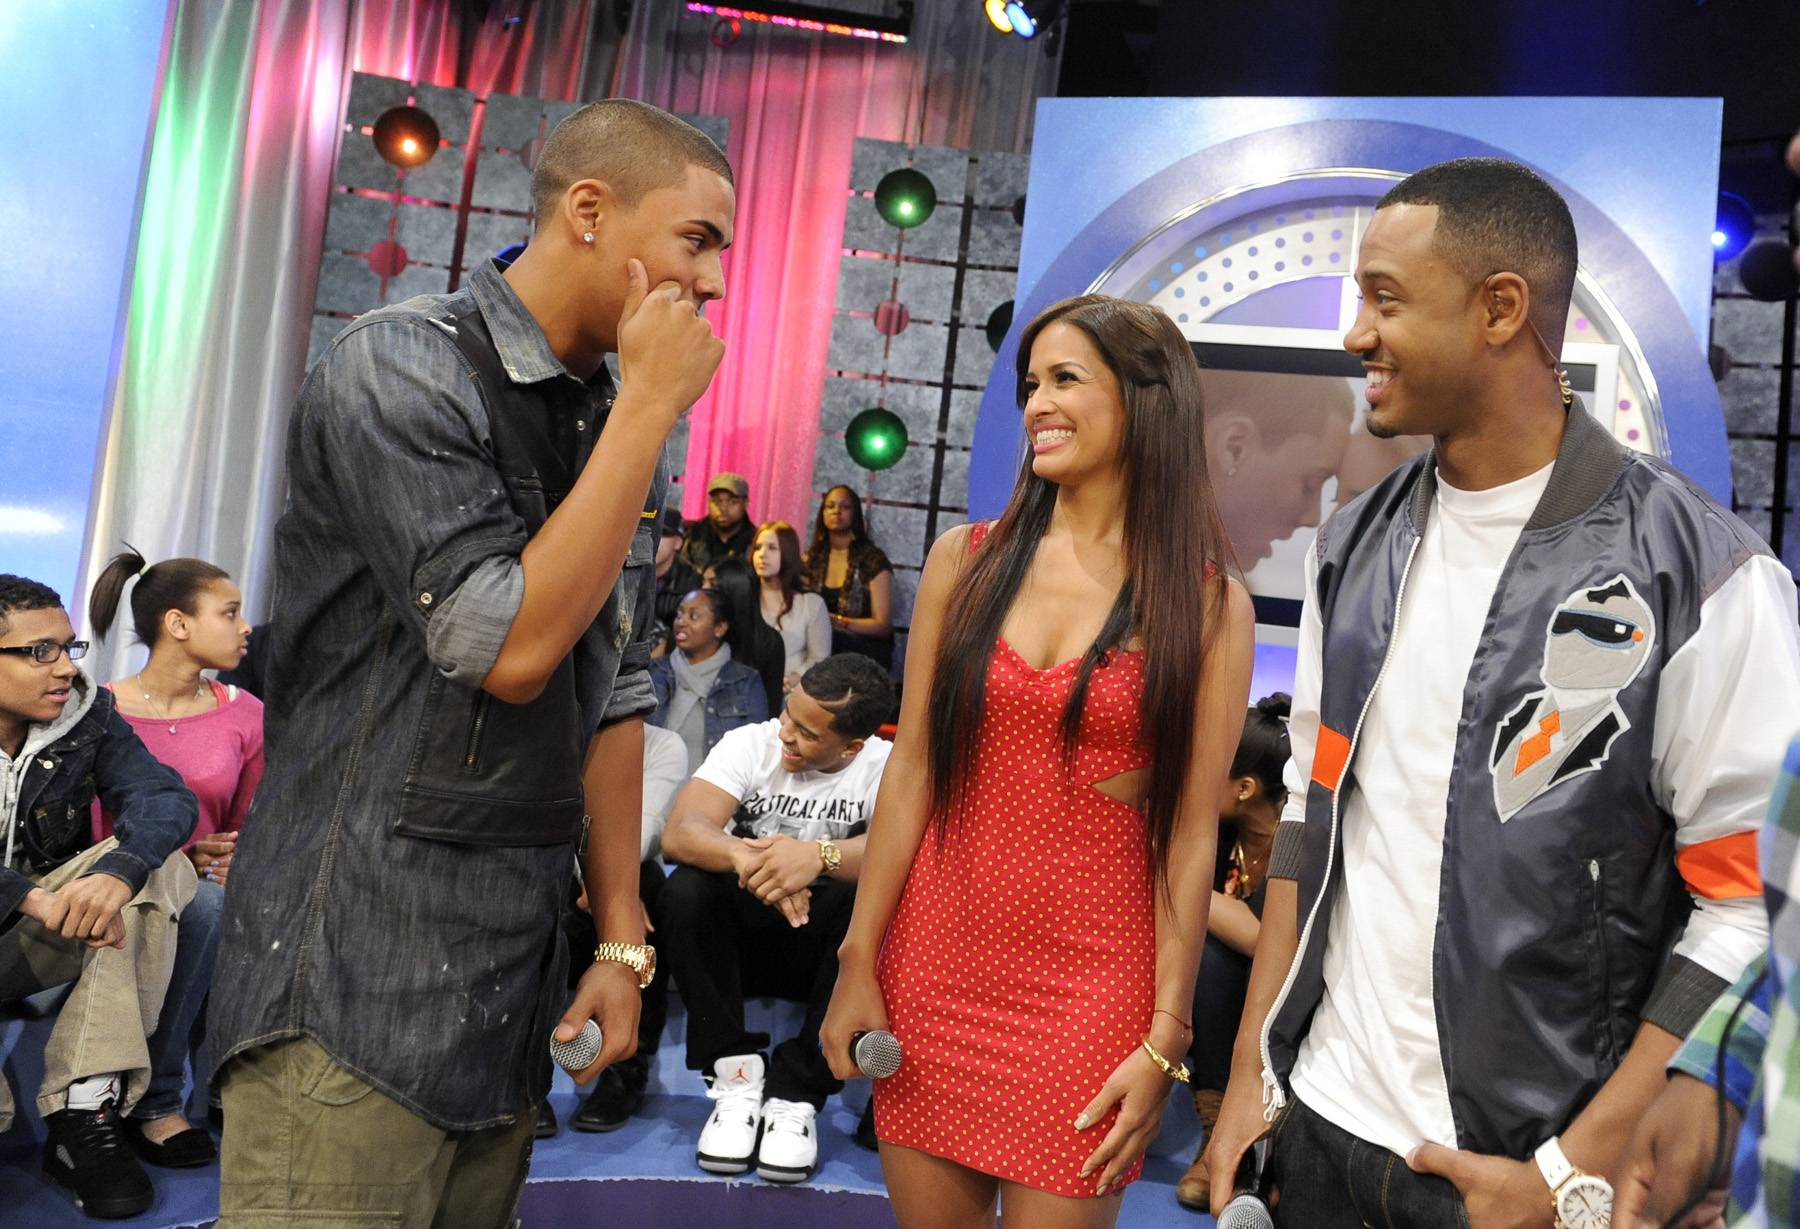 Making Moves - Quincy and Rocsi Diaz and Terrence J during commercial break at 106 & Park, May 3, 2012. (Photo: John Ricard / BET)